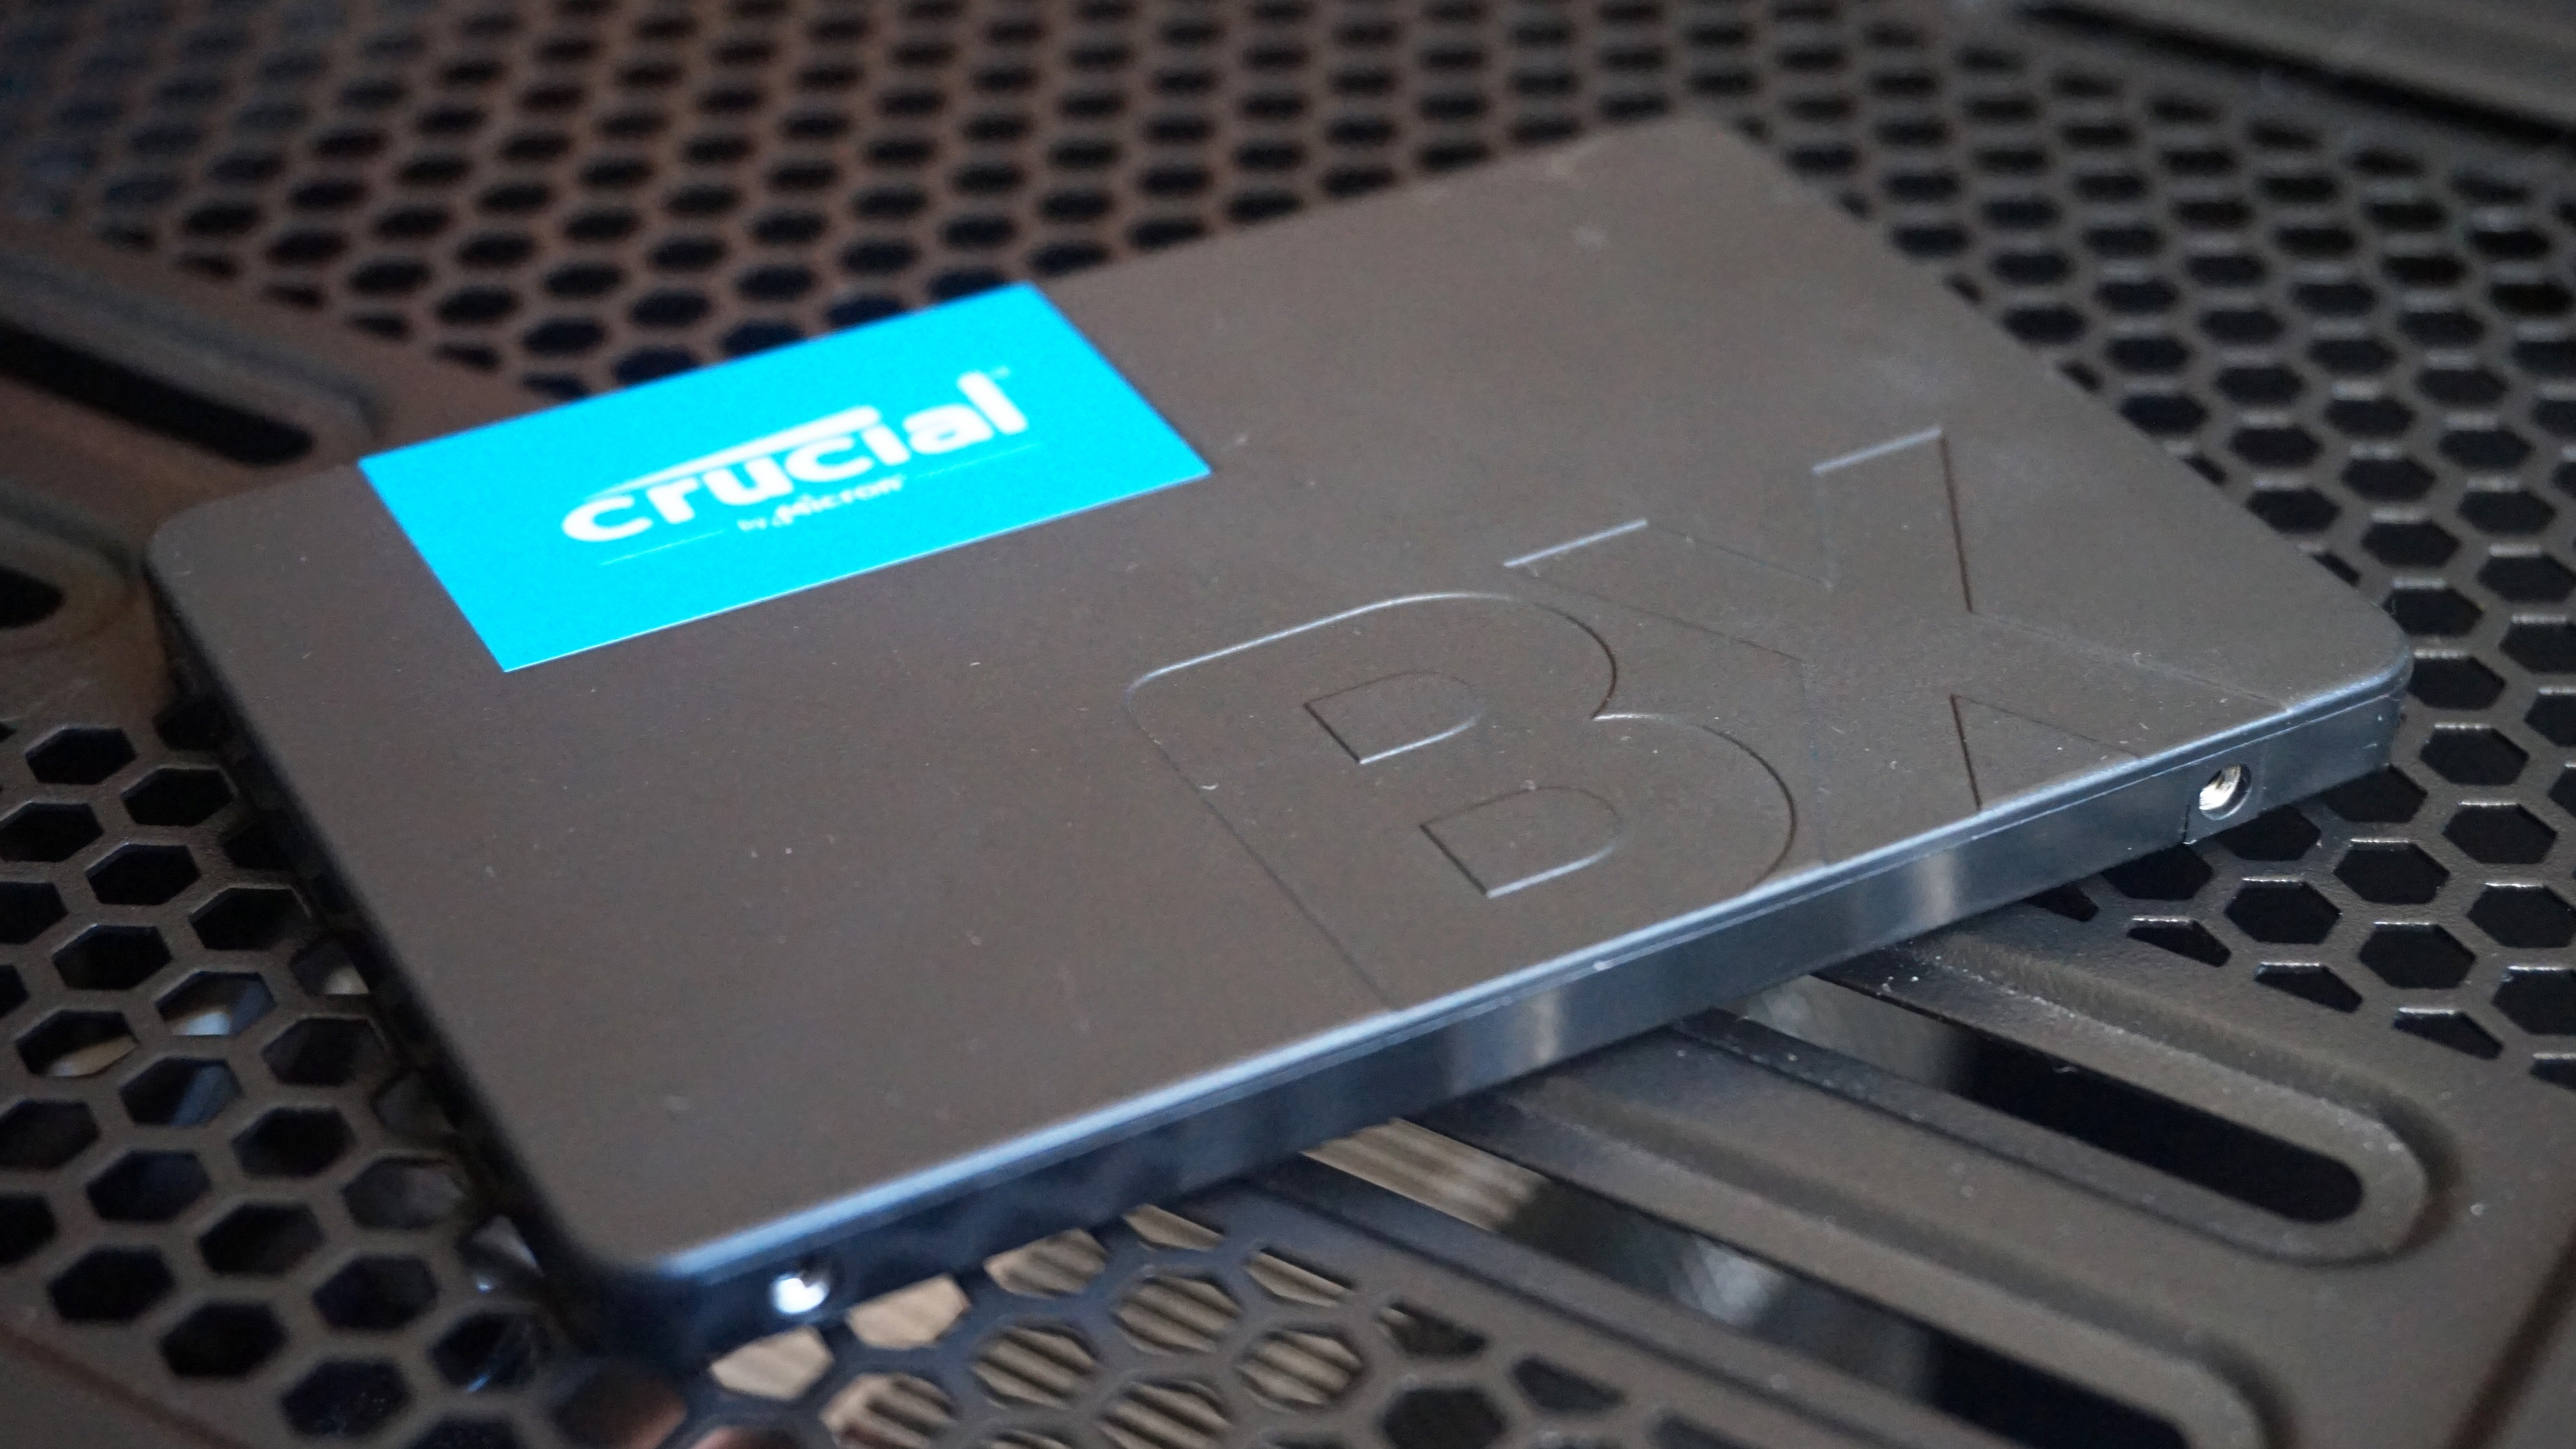 Crucial BX500 review: A great value gaming SSD | Rock Paper Shotgun